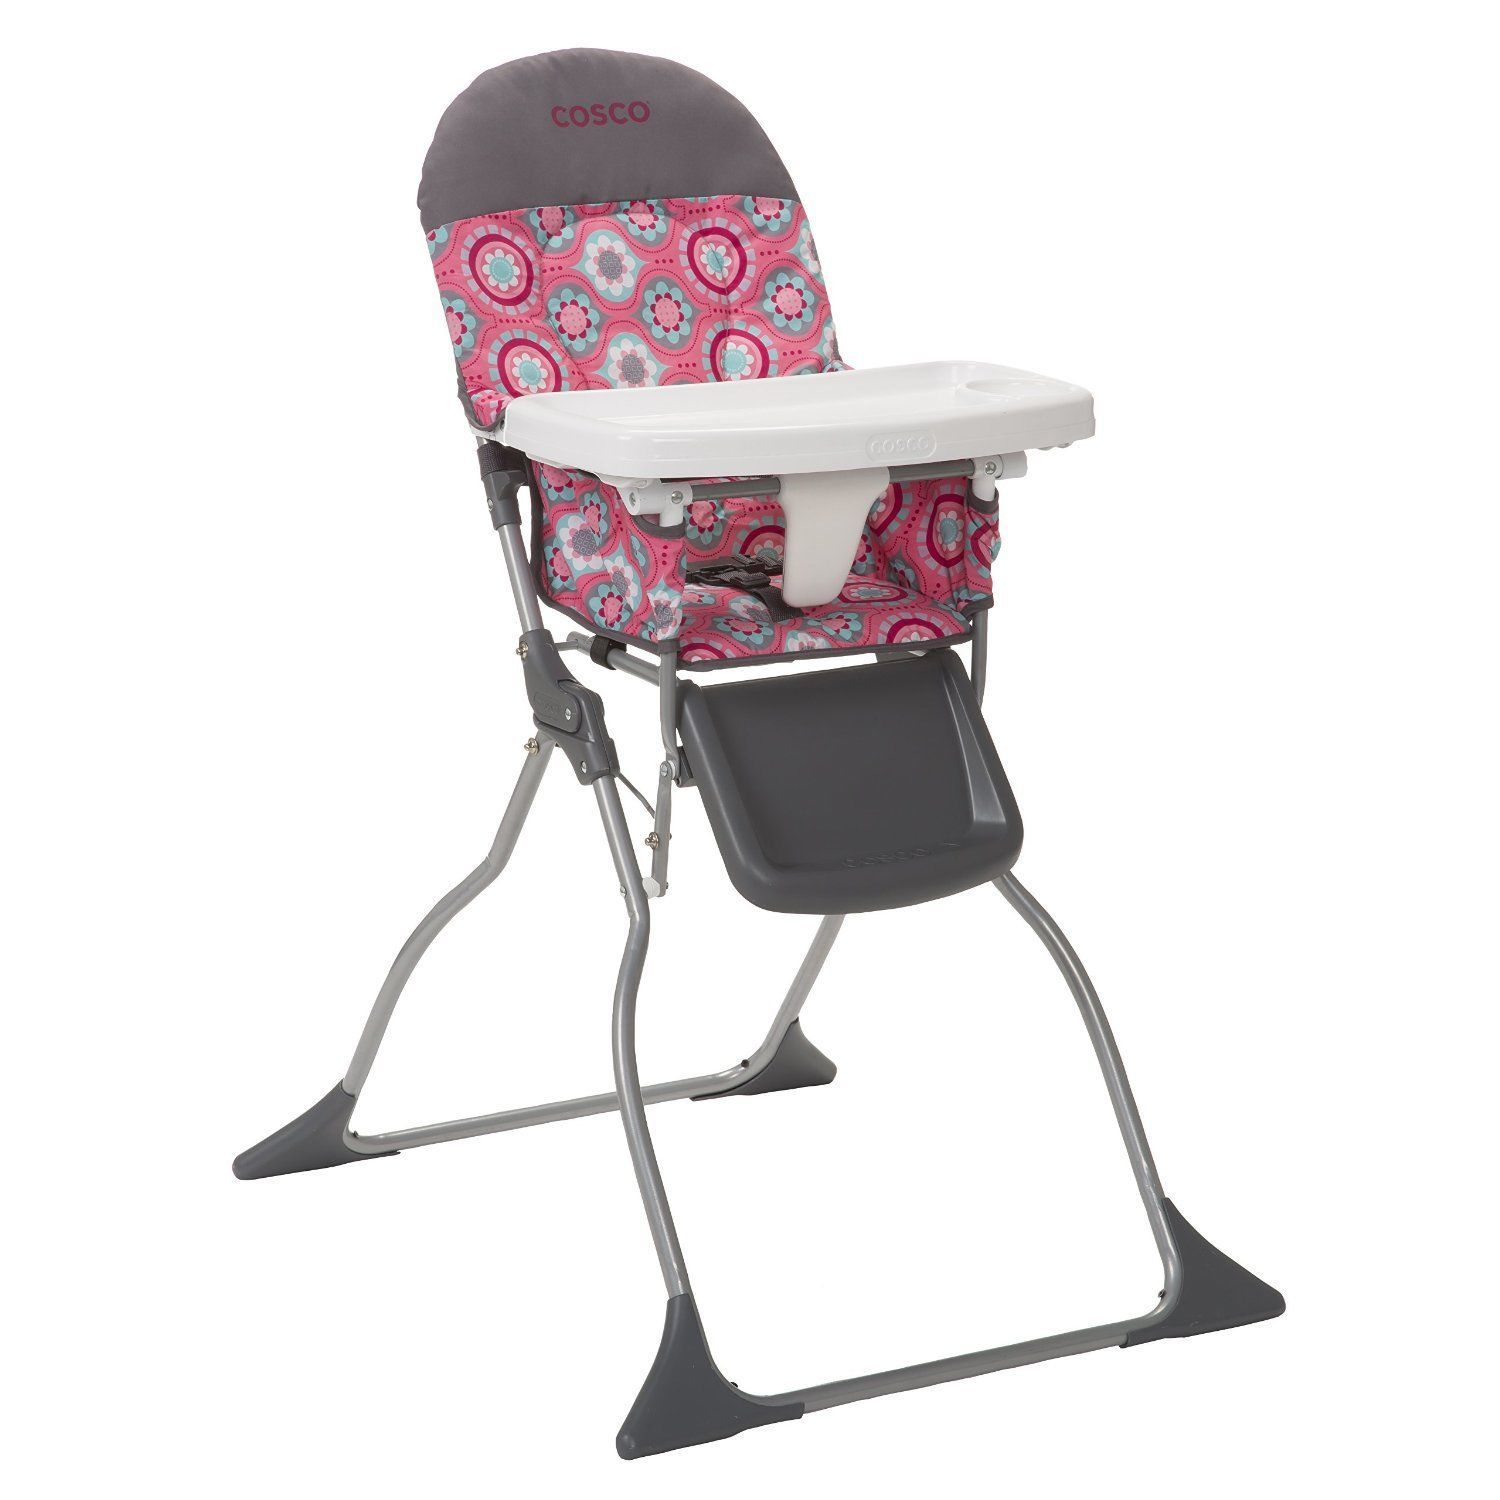 Hot Sale! $39.95 Cosco Simple Fold High Chair, Posey Pop